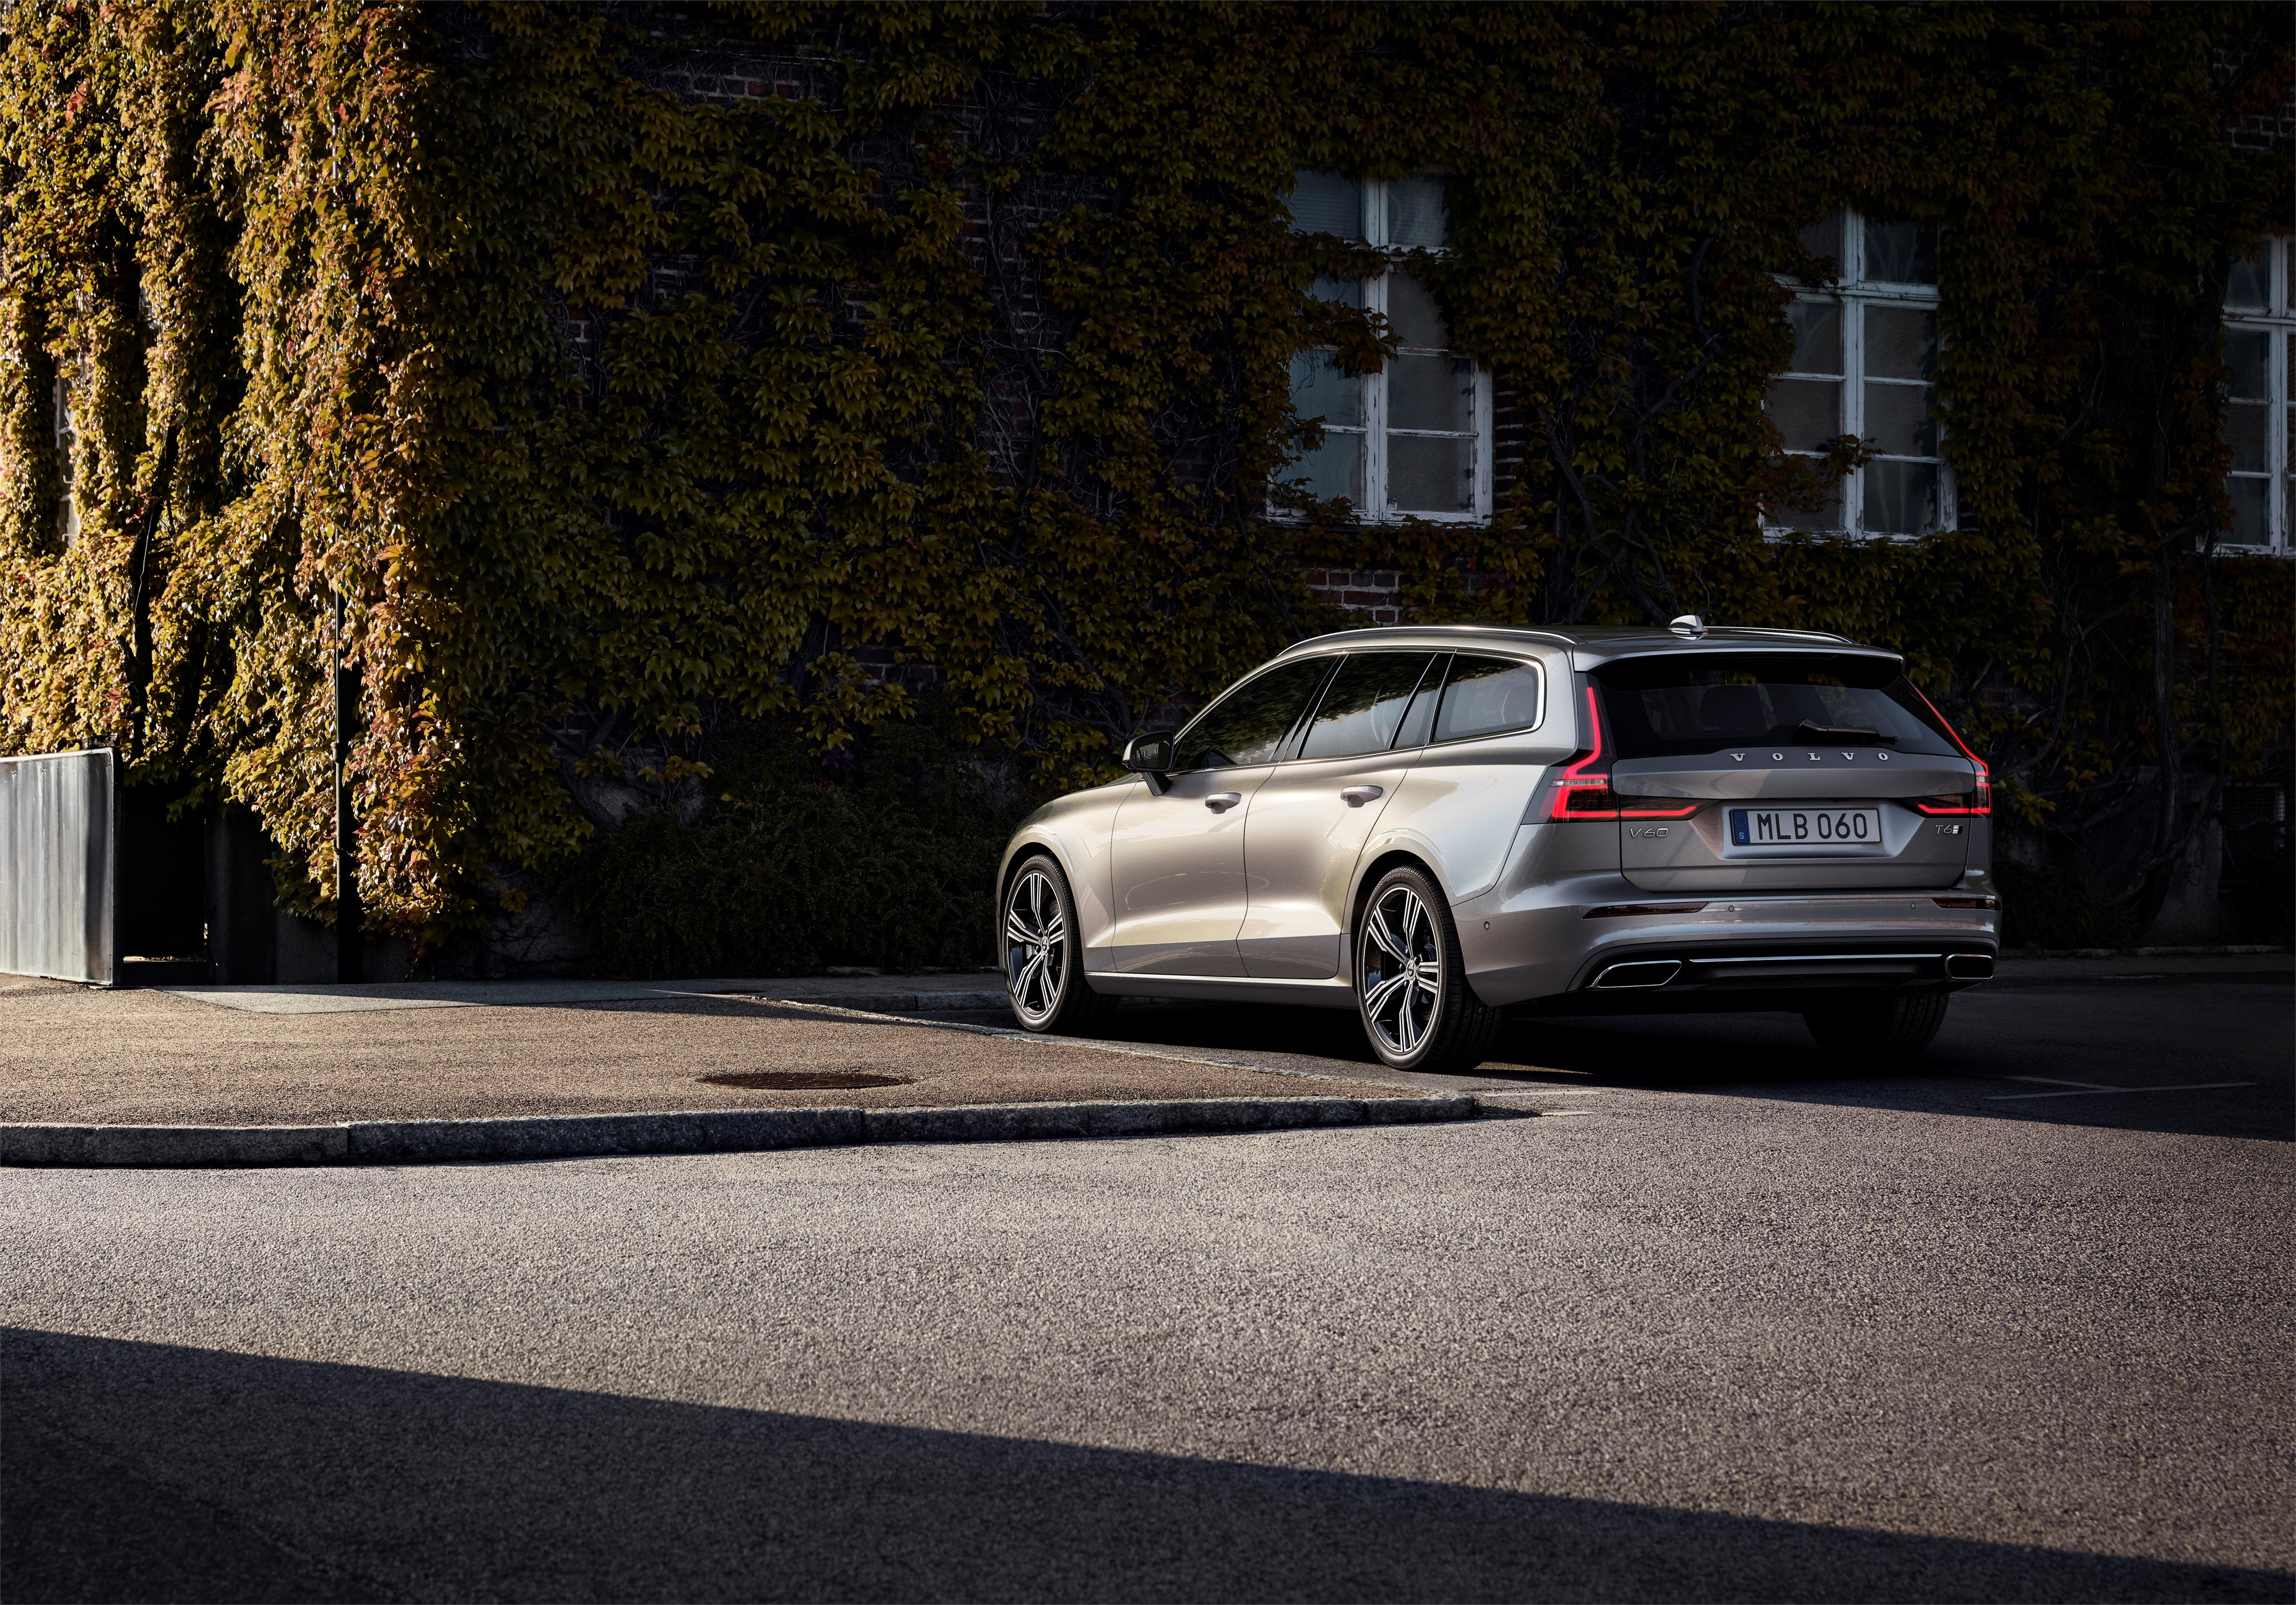 Volvo V60 Cross Country wagon model